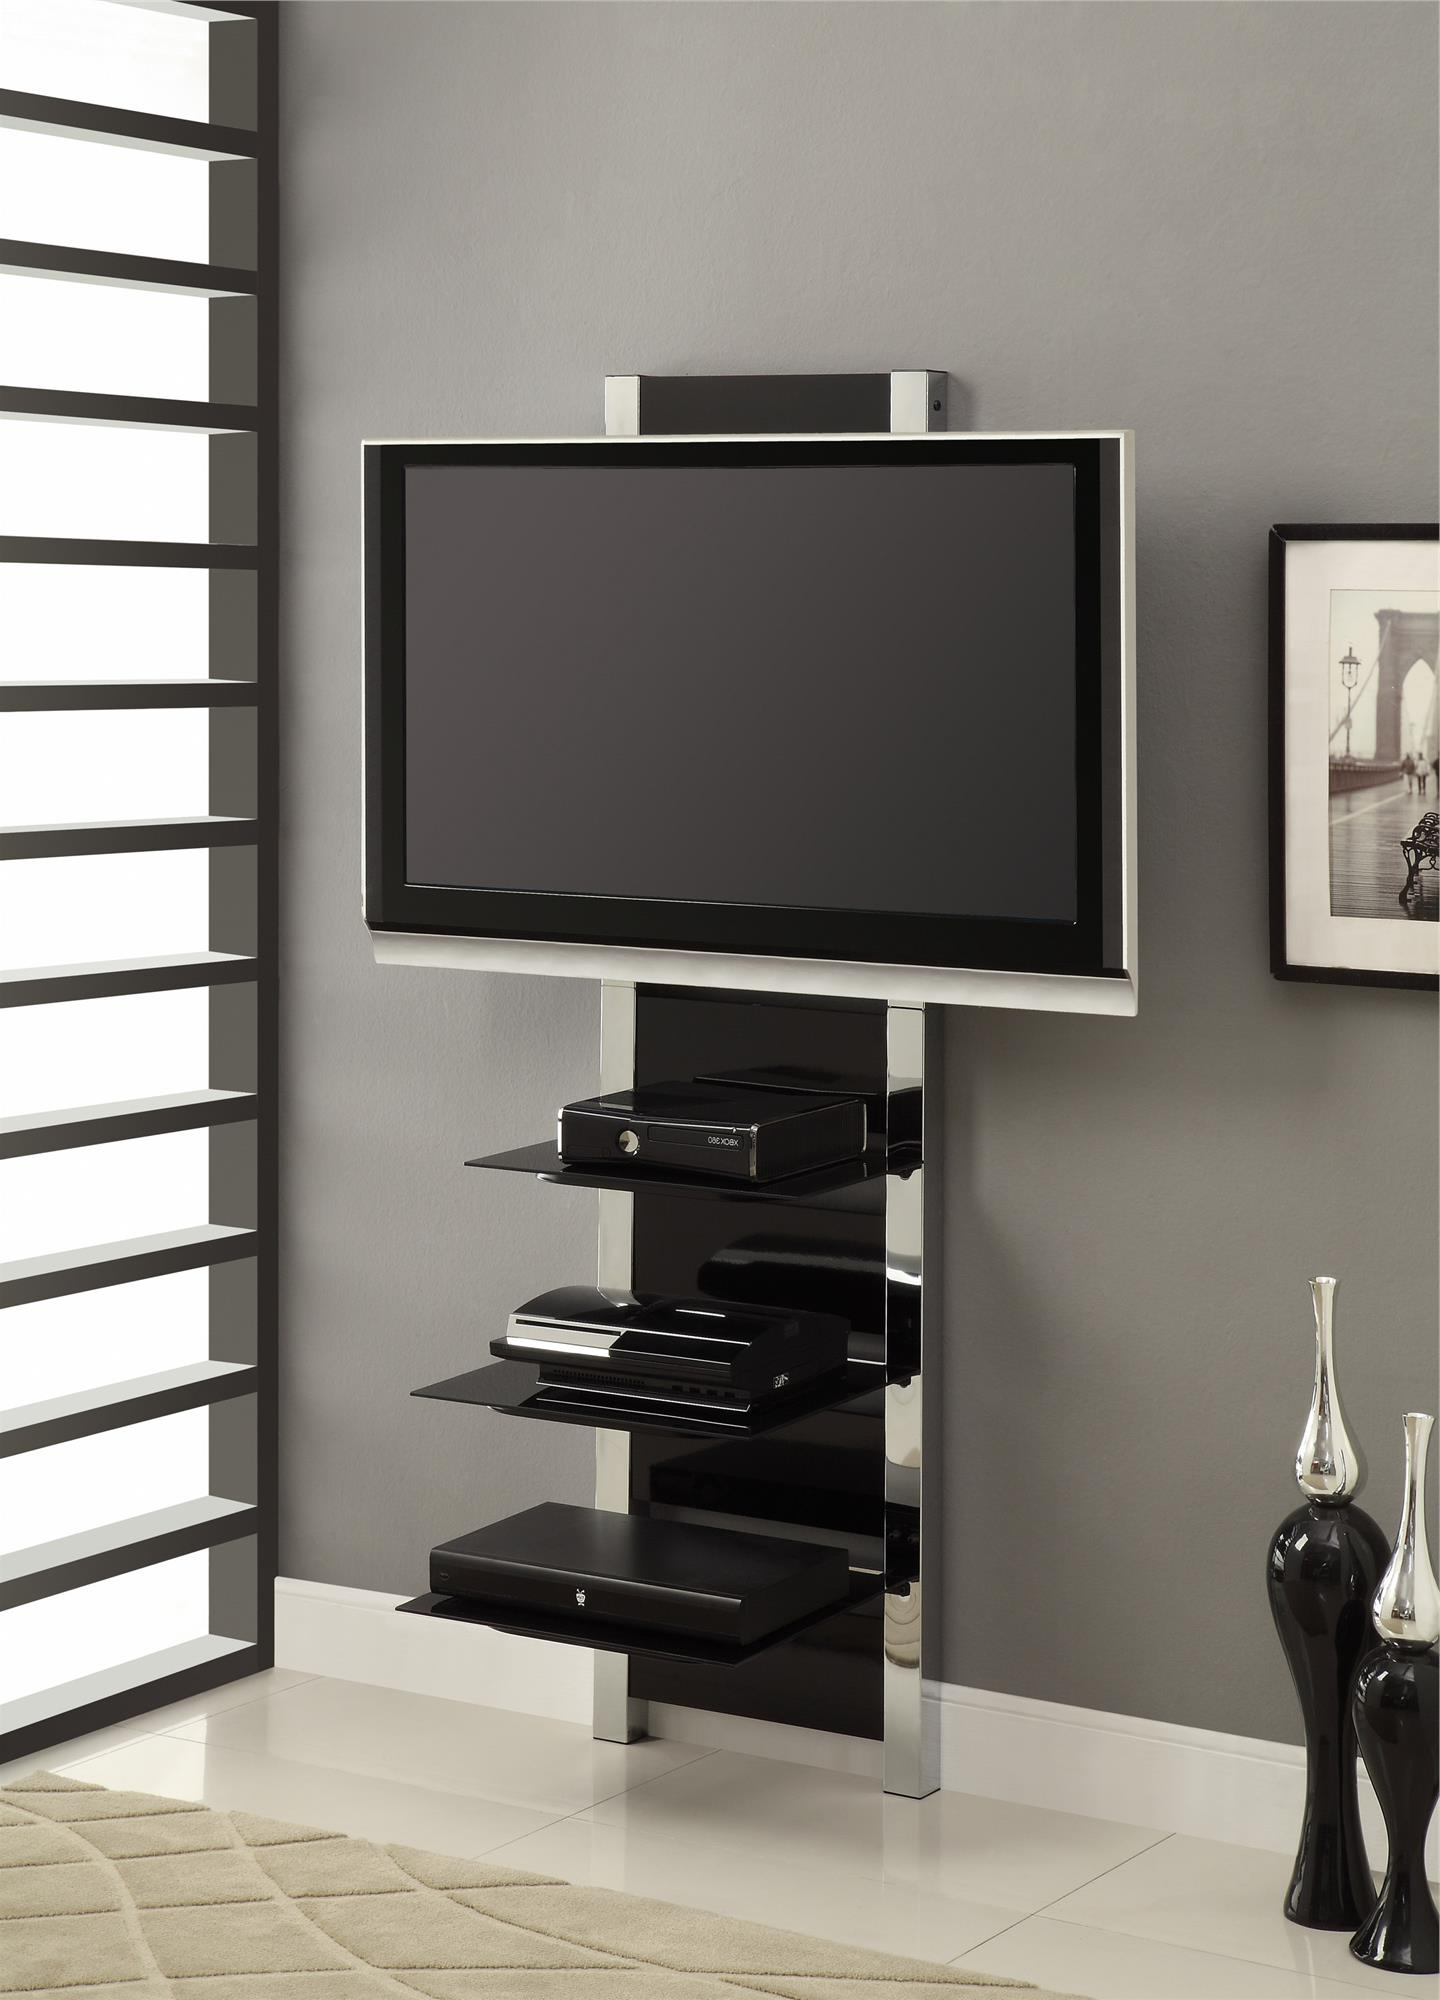 Altramount Modern Tv Stand With Glass & Chrome In Sleek Tv Stands (Gallery 5 of 20)